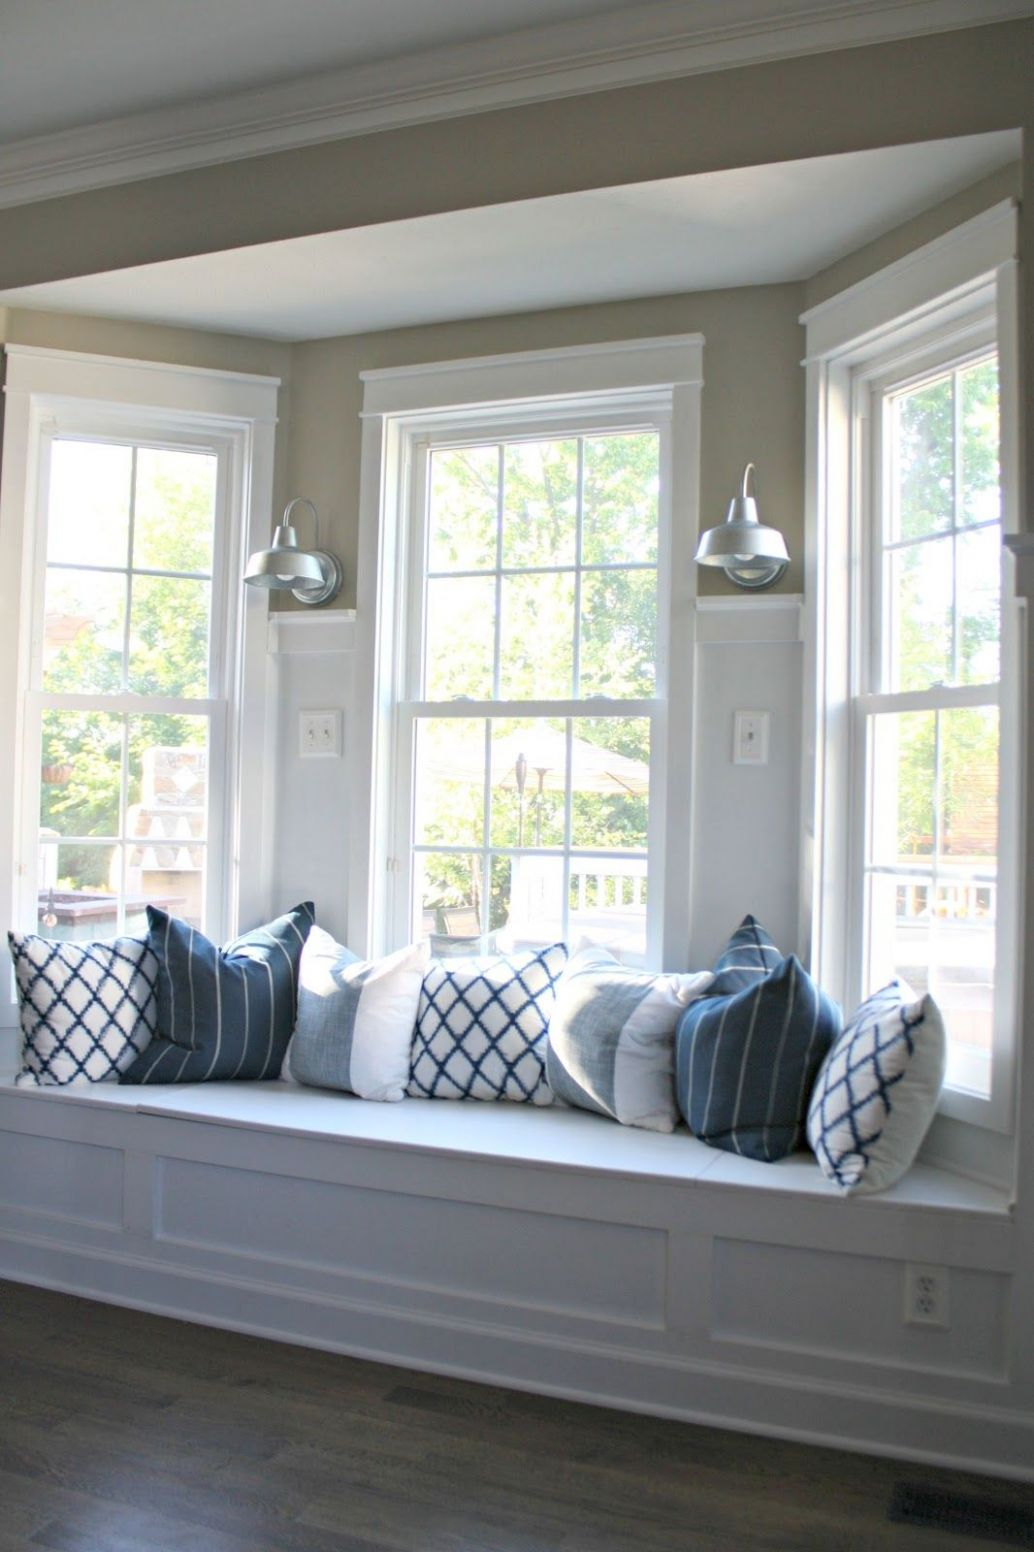 Gaining Kitchen Storage | Window seat kitchen, Bay window design ..